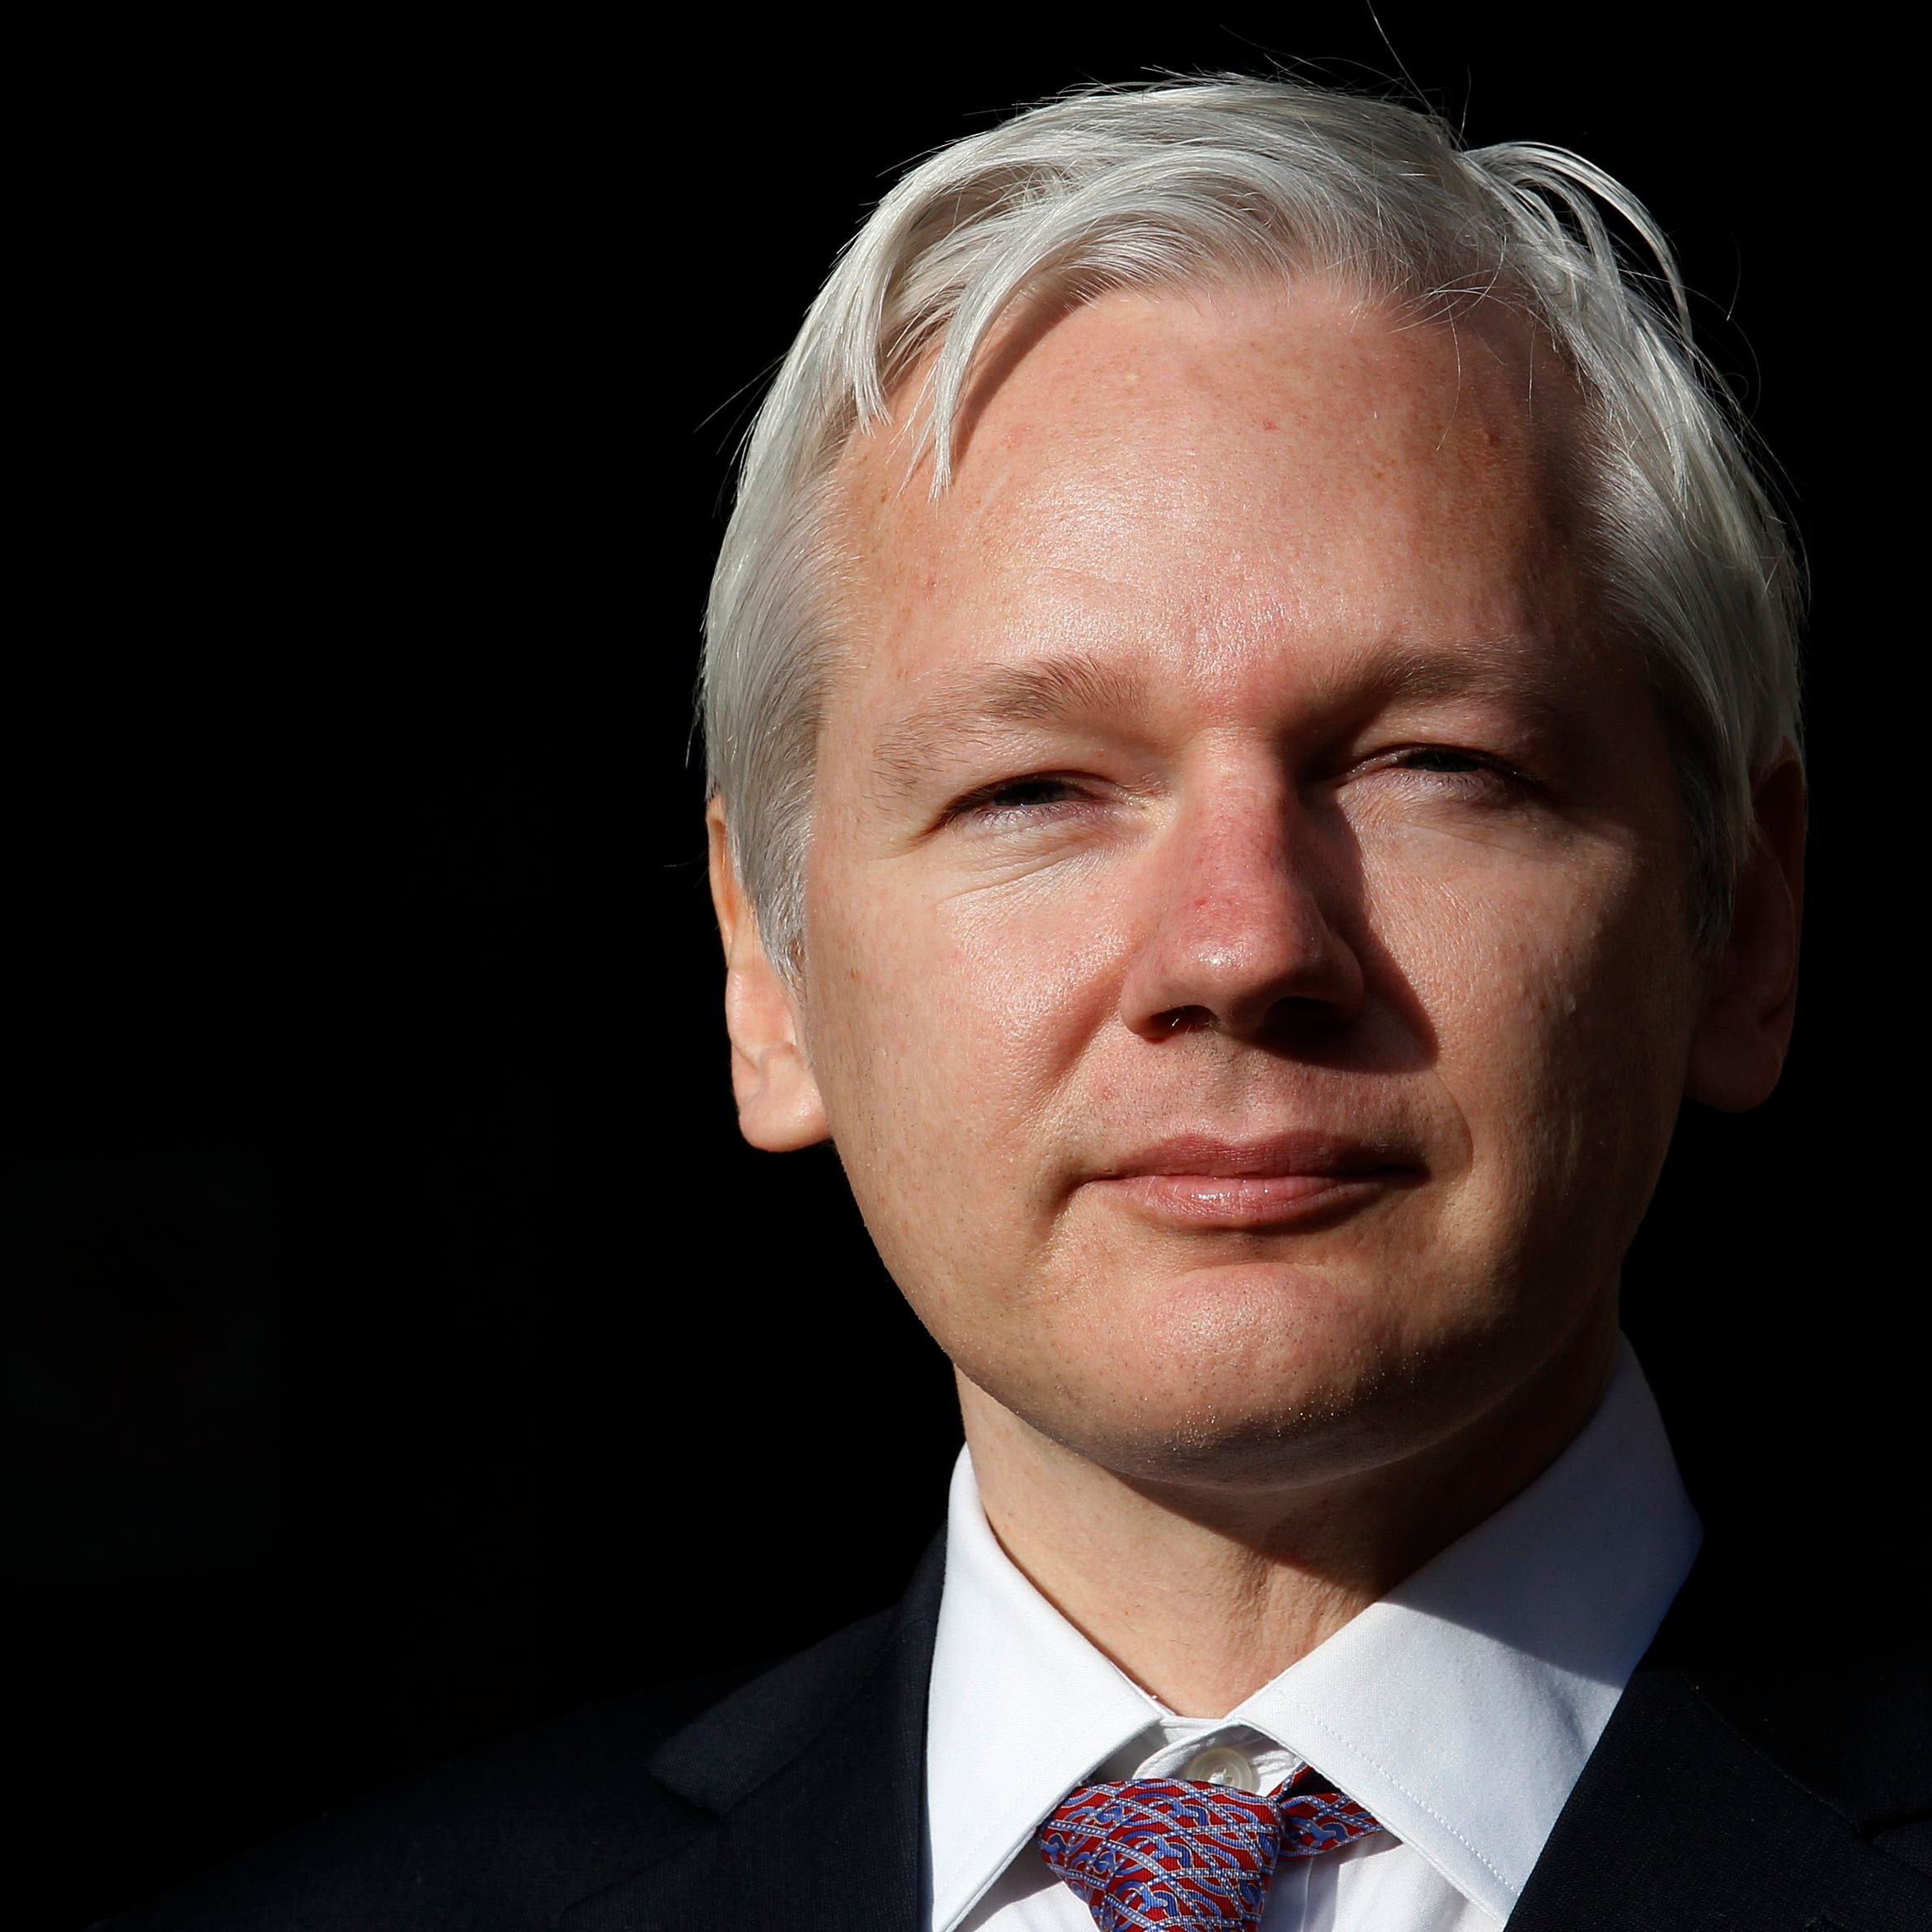 UK court grants US govt to appeal denial of WikiLeaks founder Assange's extradition